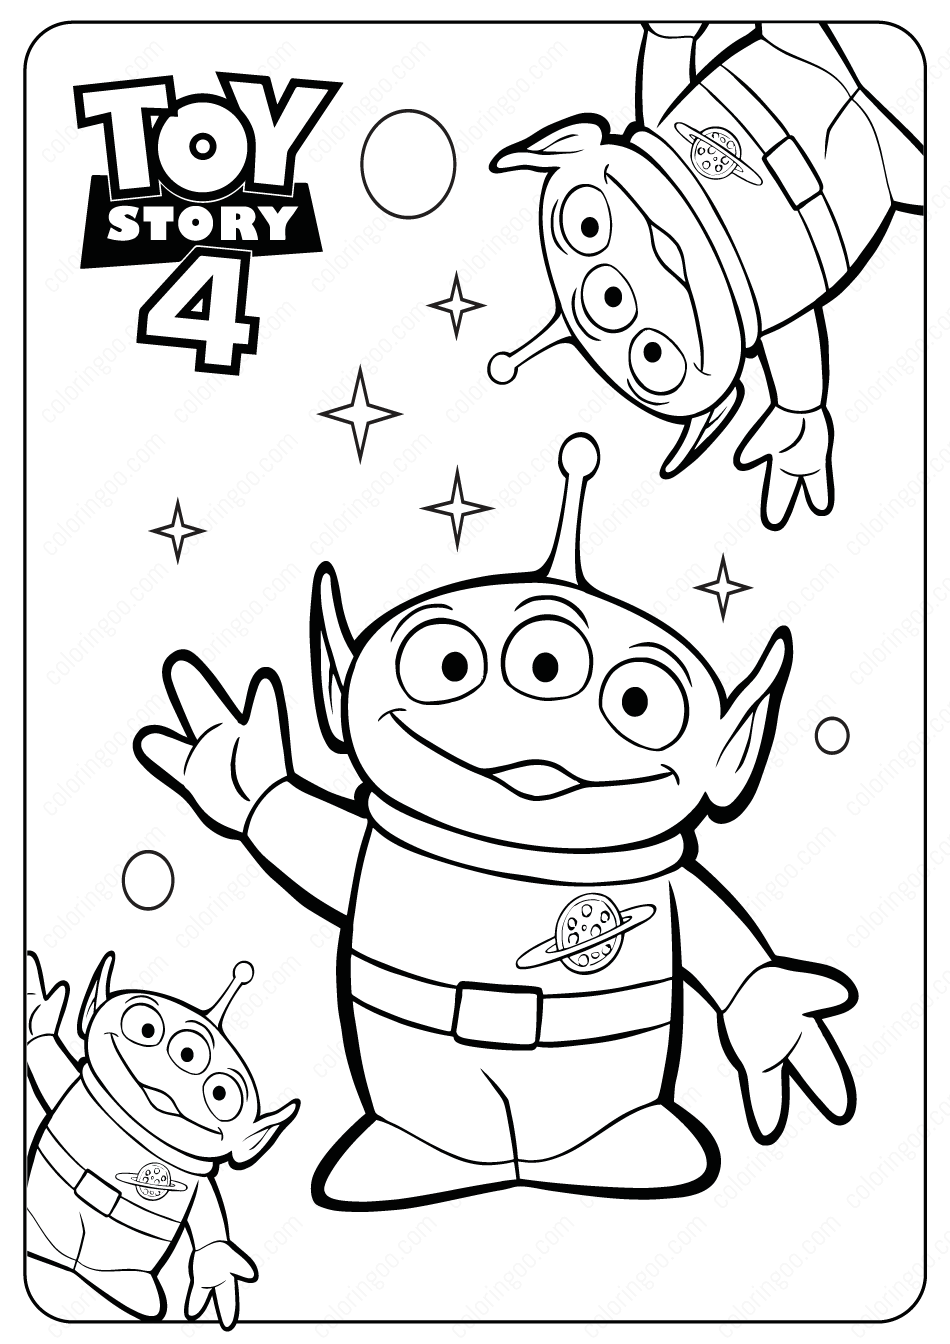 Toy Story Aliens Pdf Coloring Pages Toy Story Coloring Pages Disney Coloring Sheets Disney Coloring Pages